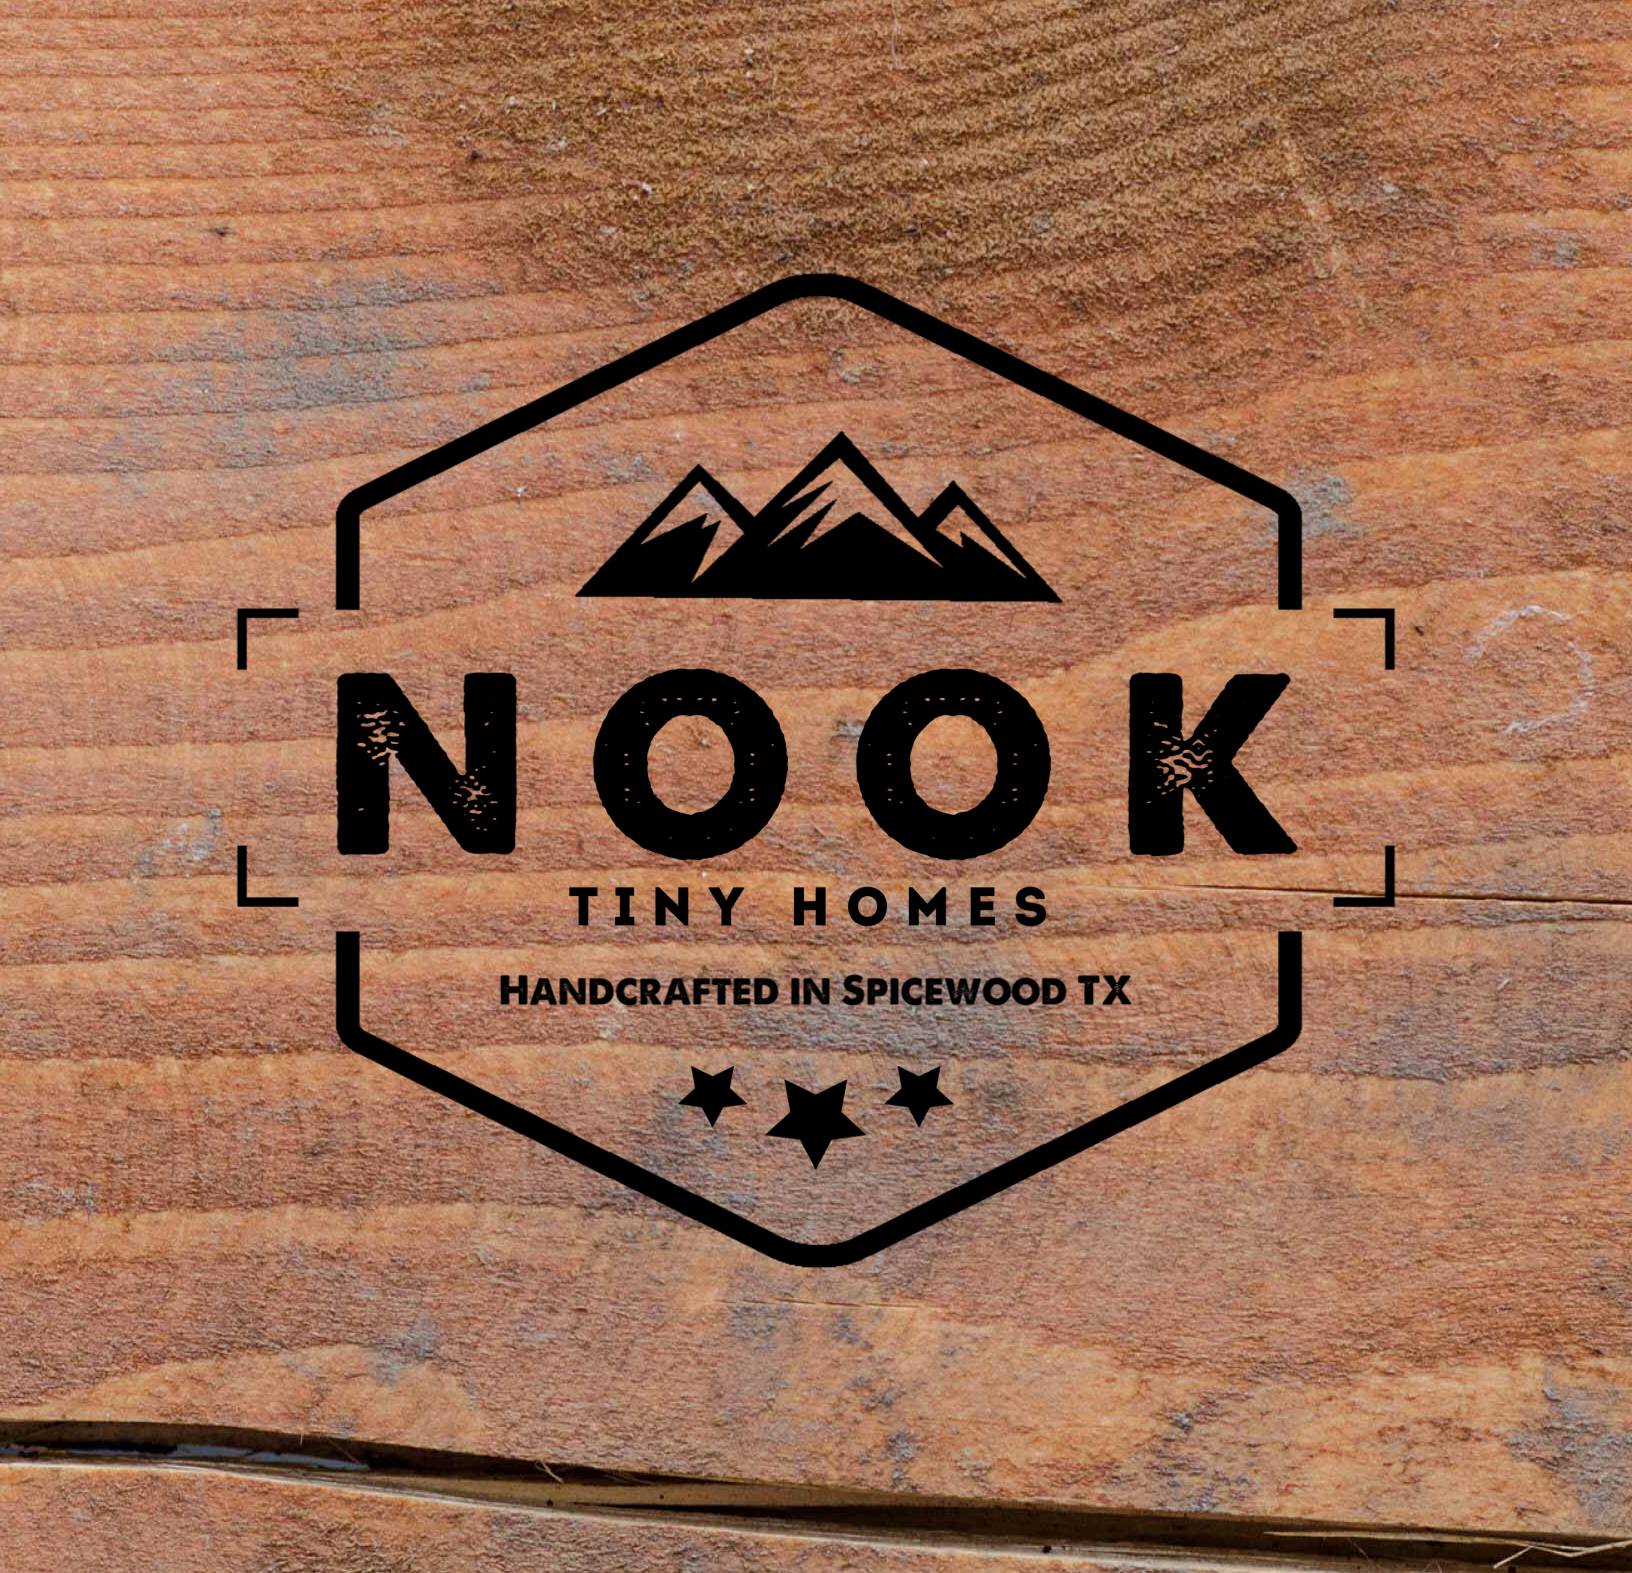 Built in our Spicewood, Texas shop, we are creating homes that help you find your sense of place... Whether mobile, located on a mountainside, or floating on a lake, we help you define a space that truly speaks to you.  ...Find your Nook.